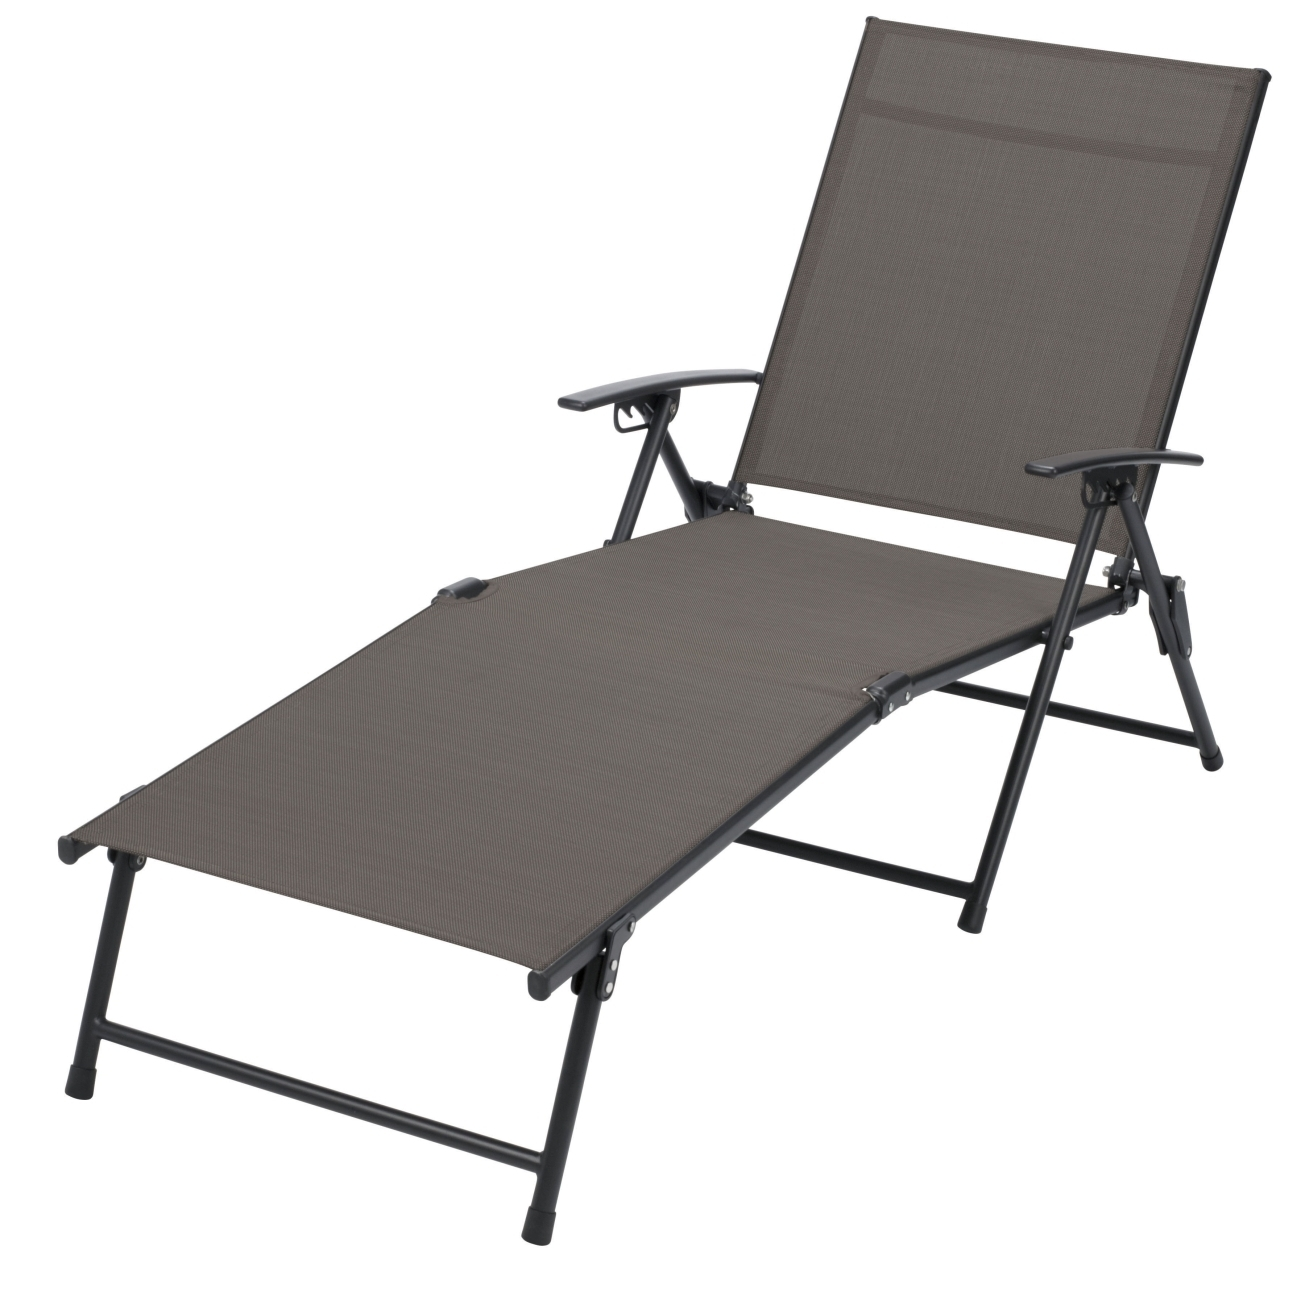 Famous Outdoor Lounge Chairs, Patio & Pool Lounge Chairs At Ace Hardware In Folding Chaise Lounge Lawn Chairs (View 10 of 15)